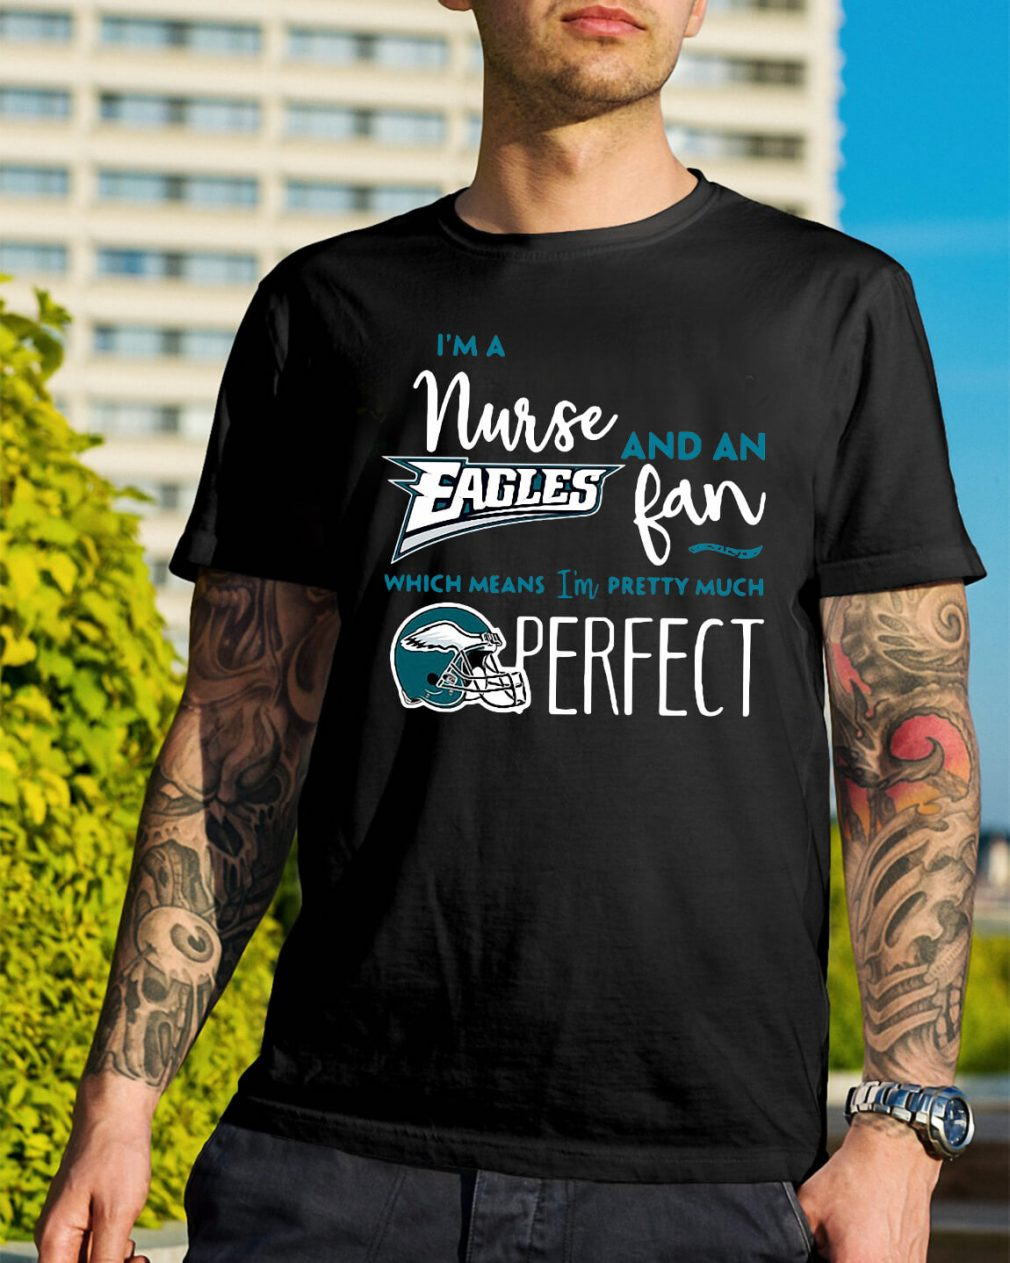 I'm a nurse and an Eagles fan which means I'm pretty much perfect shirt